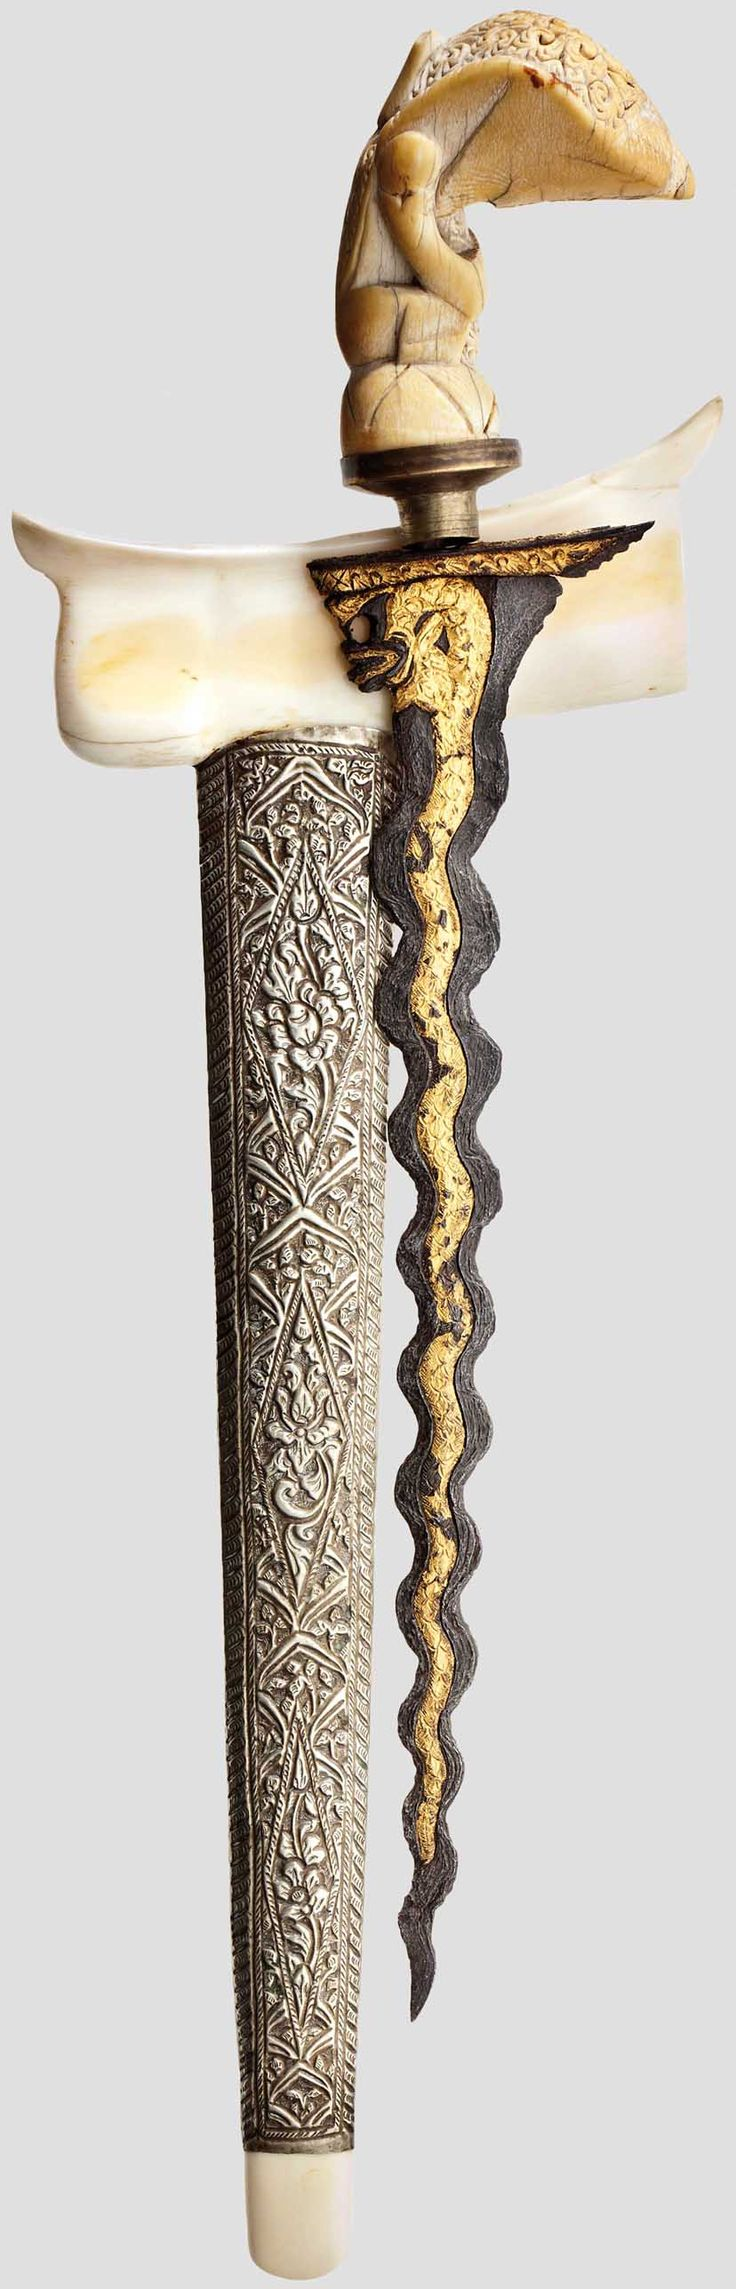 Malay Archipelago  Gold Studded Kris, Sumatra before 1900